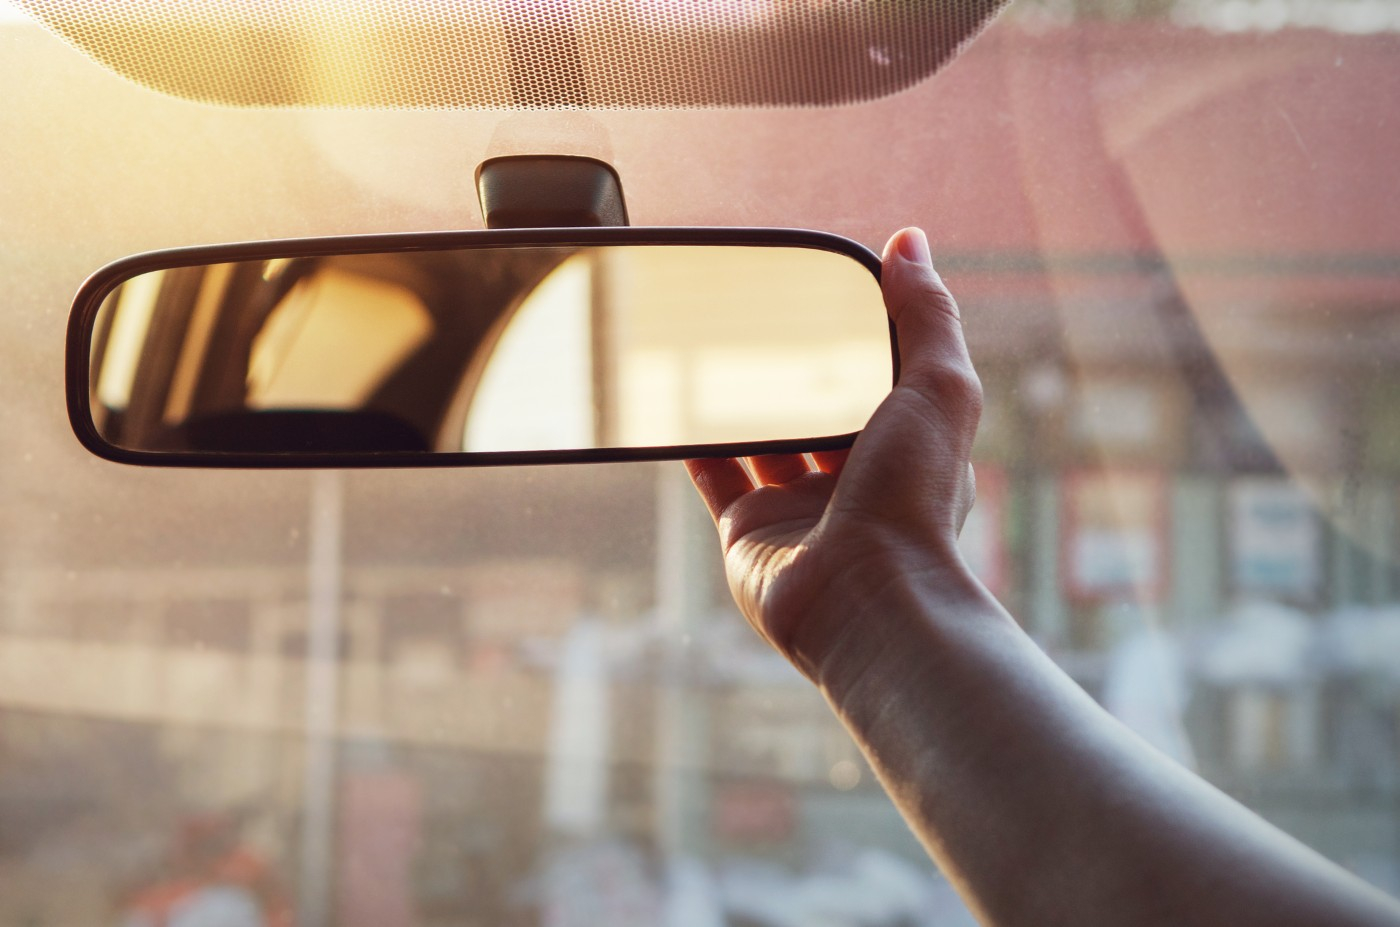 https://tickertapecdn.tdameritrade.com/assets/images/pages/md/Rearview mirror: Backtesting options strategies